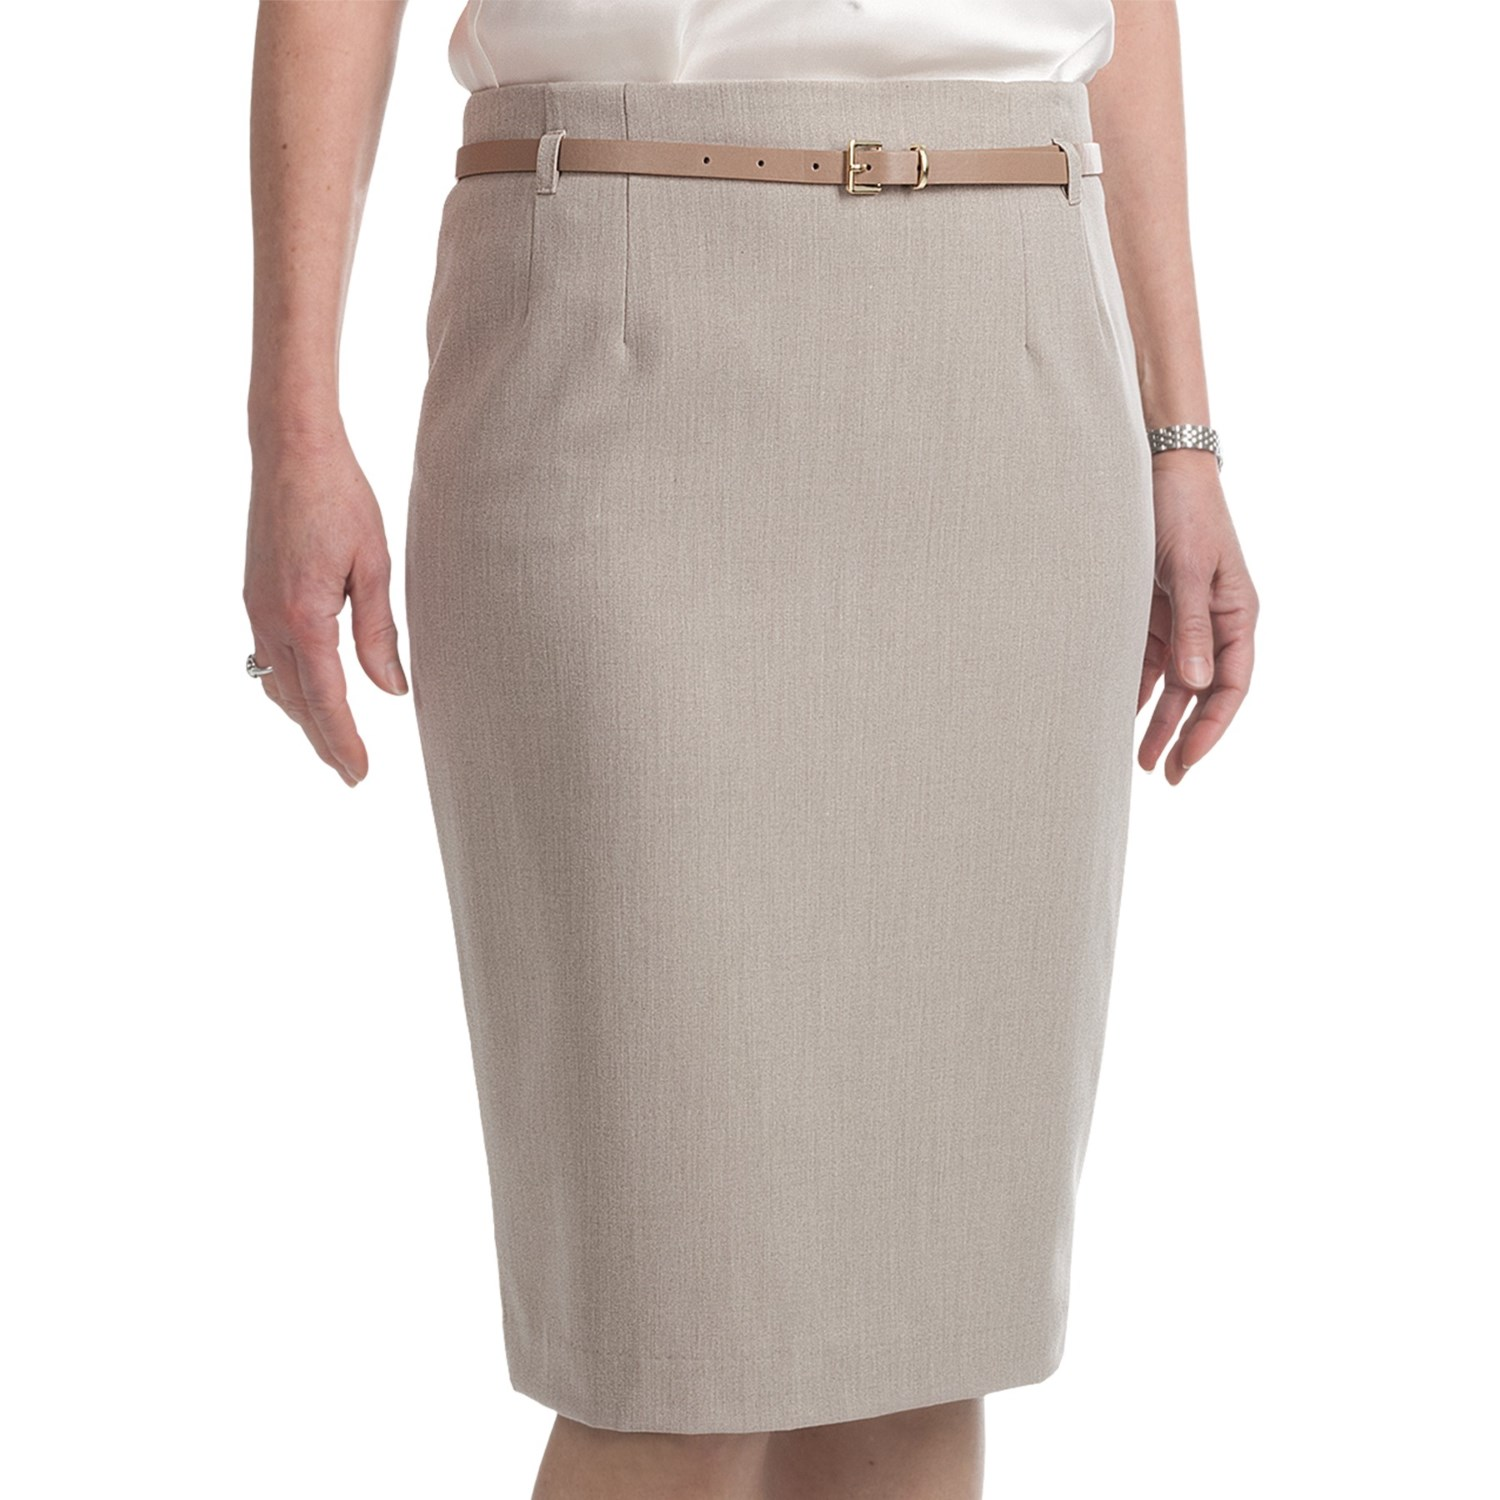 Cool Business Attire For Women Office Fashion Inspirations